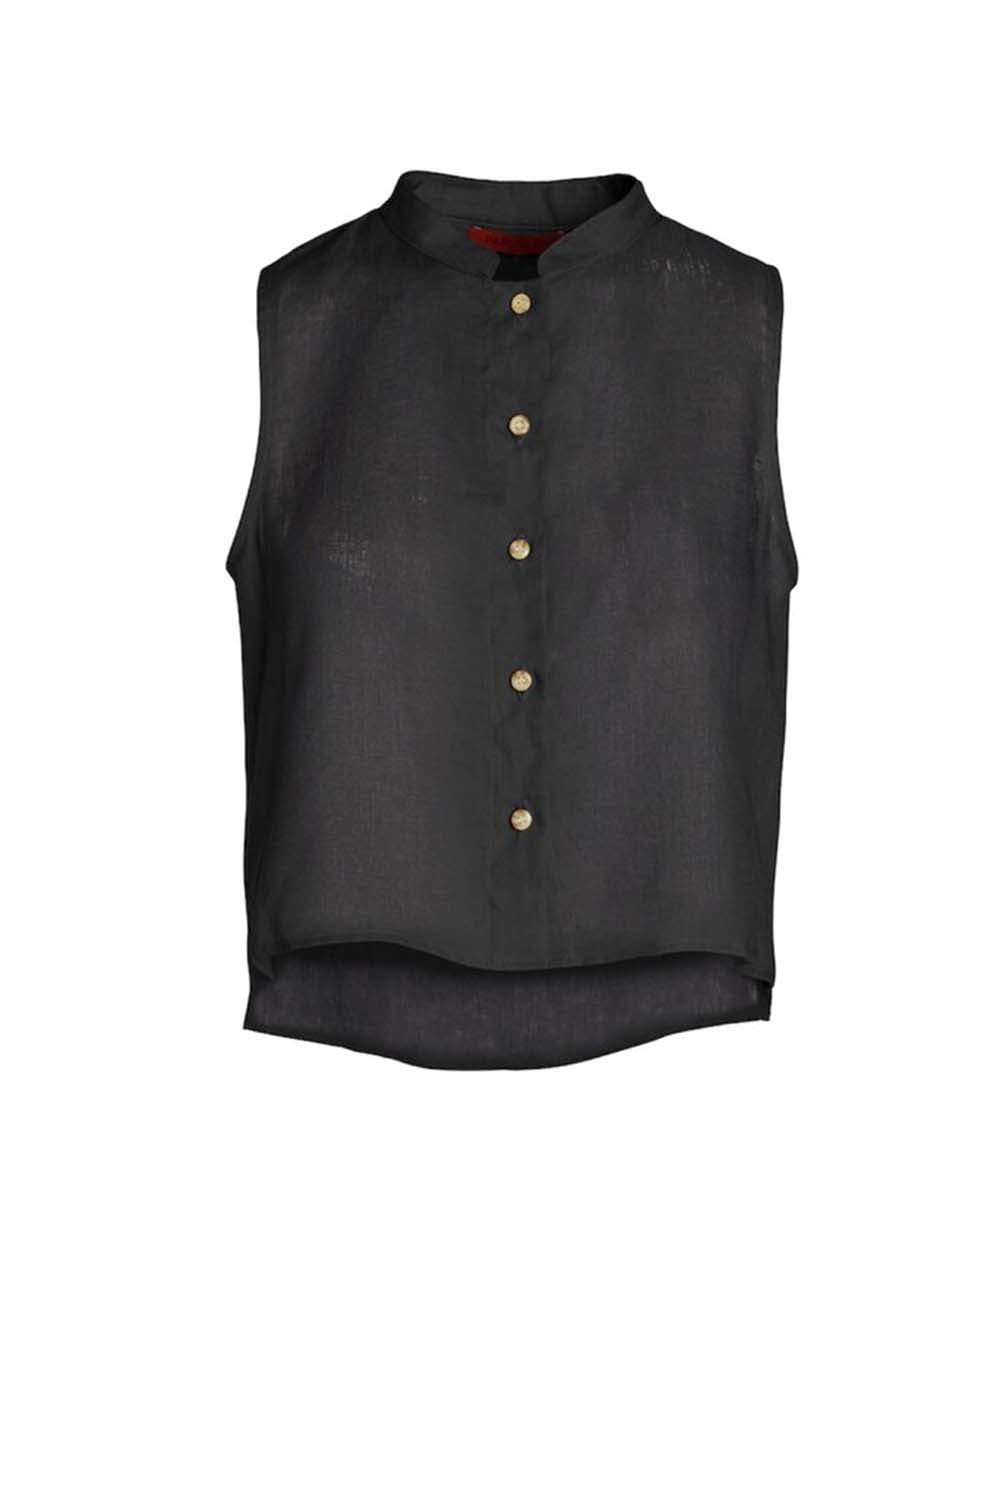 Studio Sleeveless Top Black